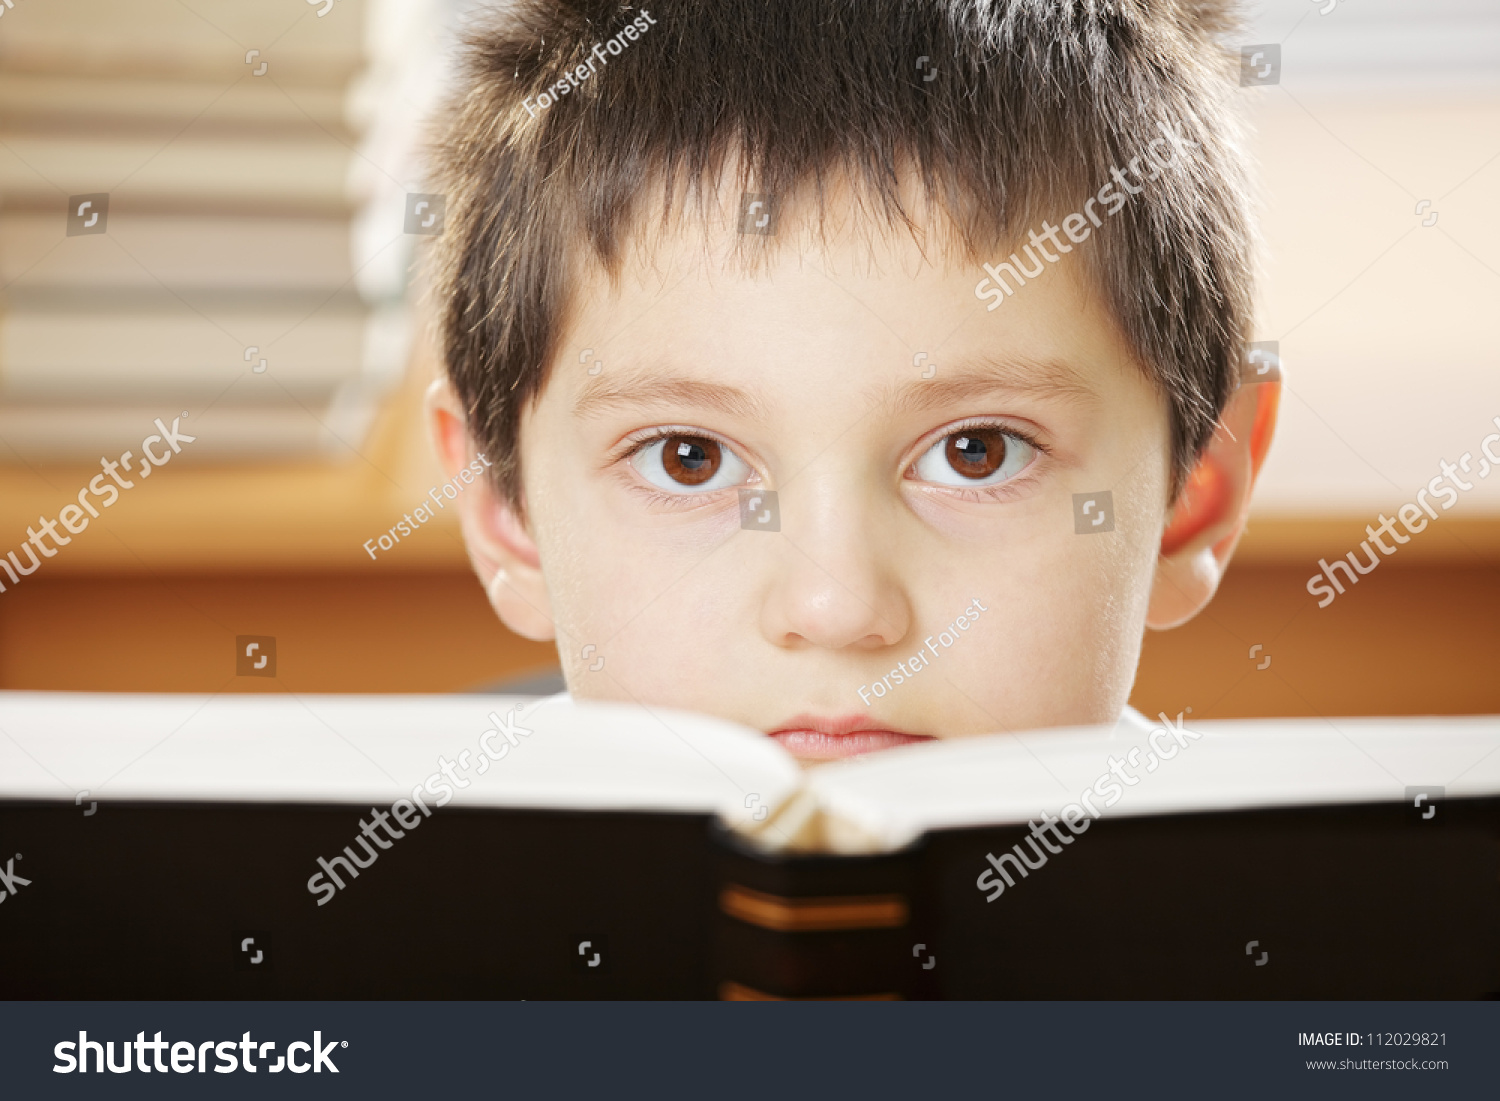 Black Boy Book Cover : Boy looking over open book with black cover closeup photo